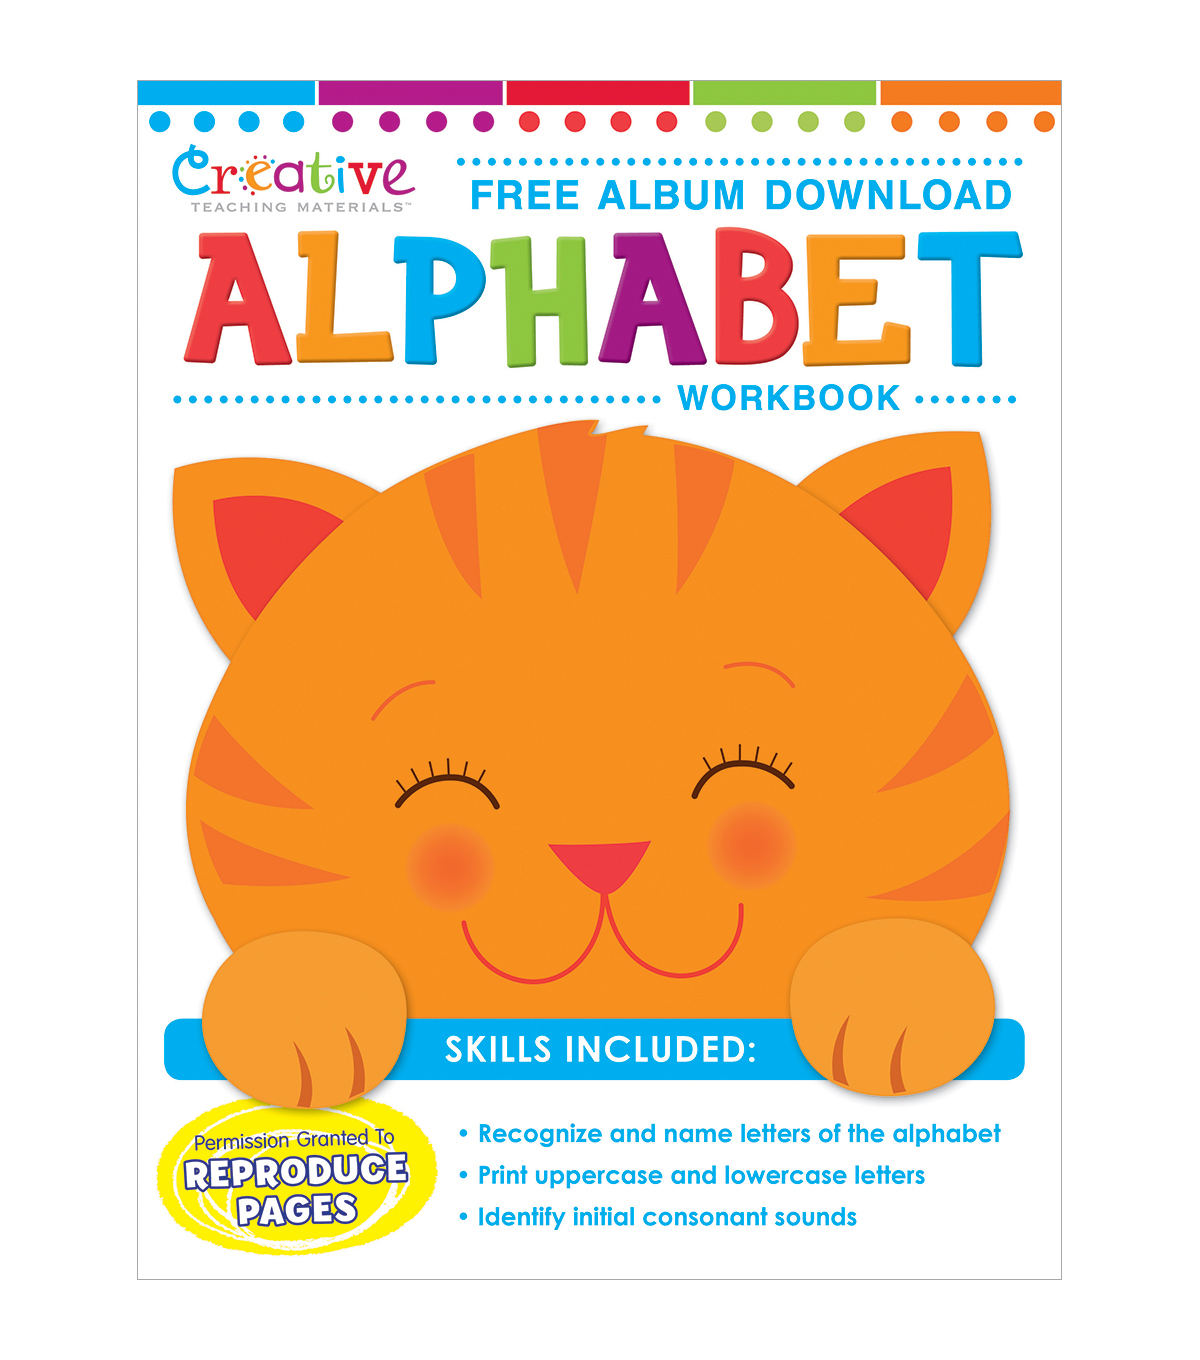 Creative Teaching Materials Workbook-Alphabet